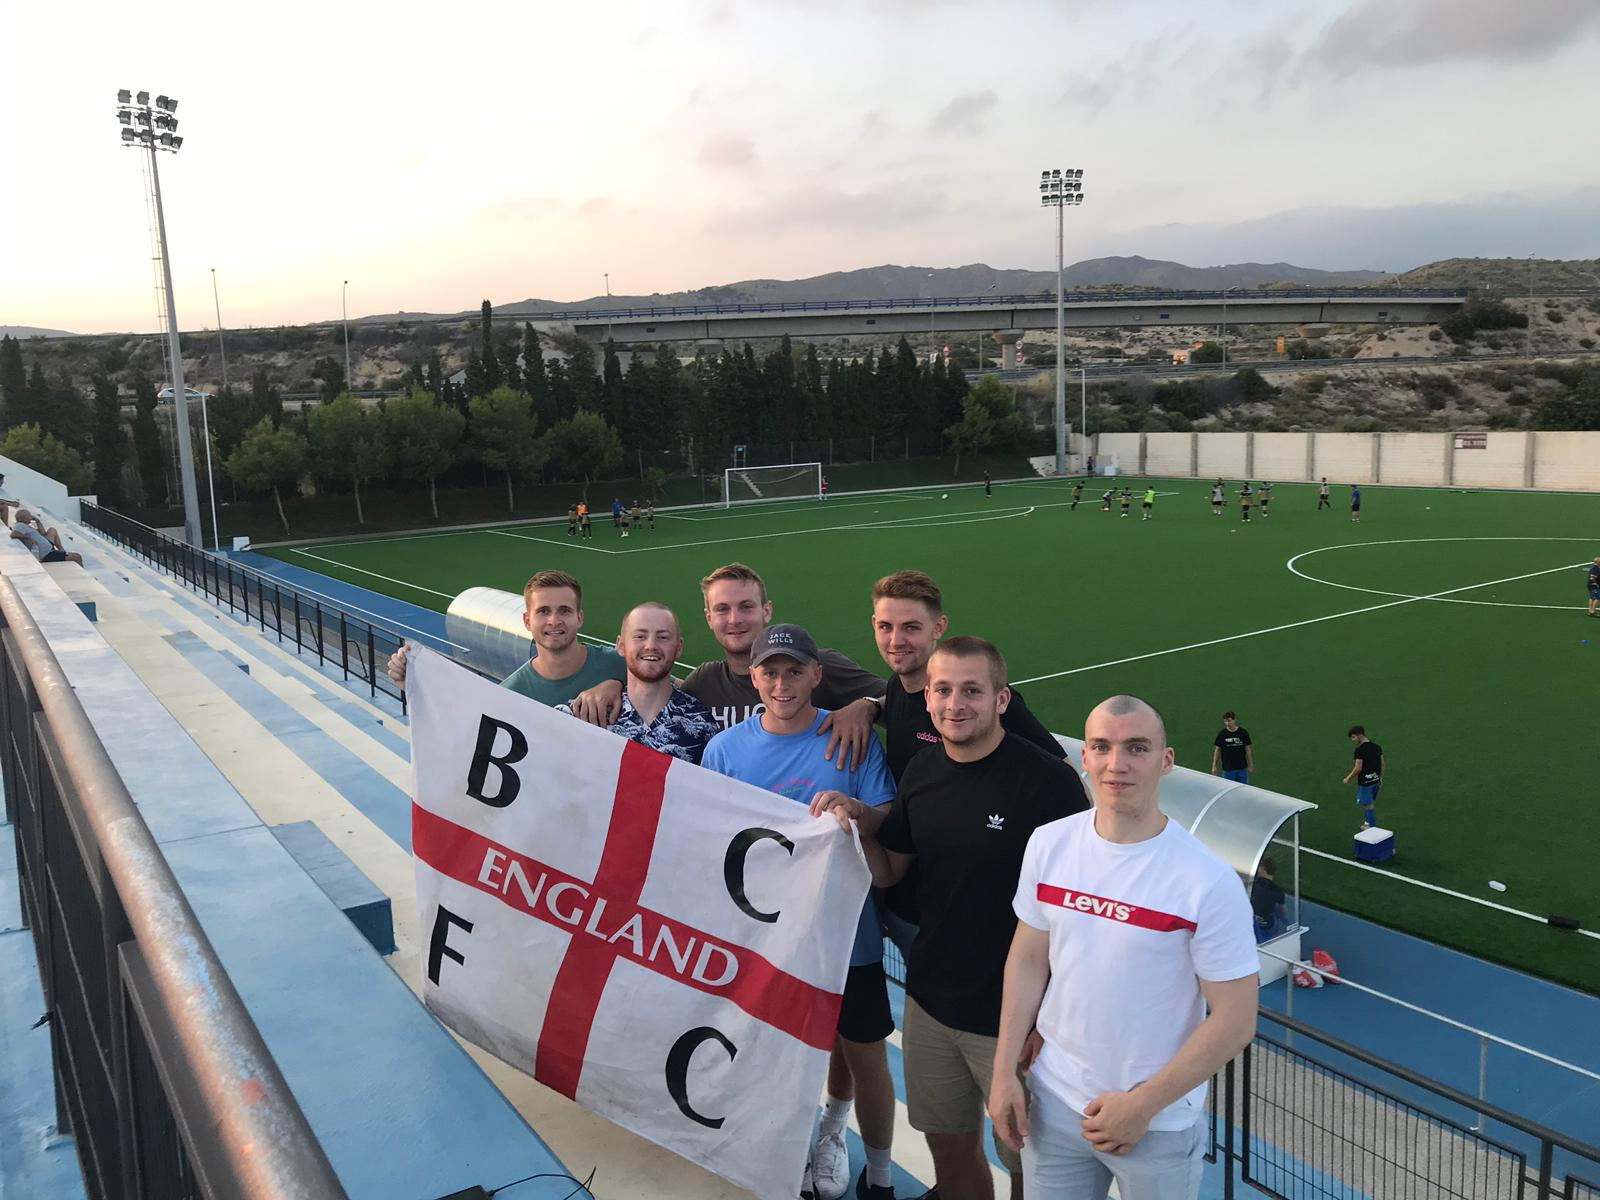 We had fans from England supporting Alicante City in pre-season action this week!